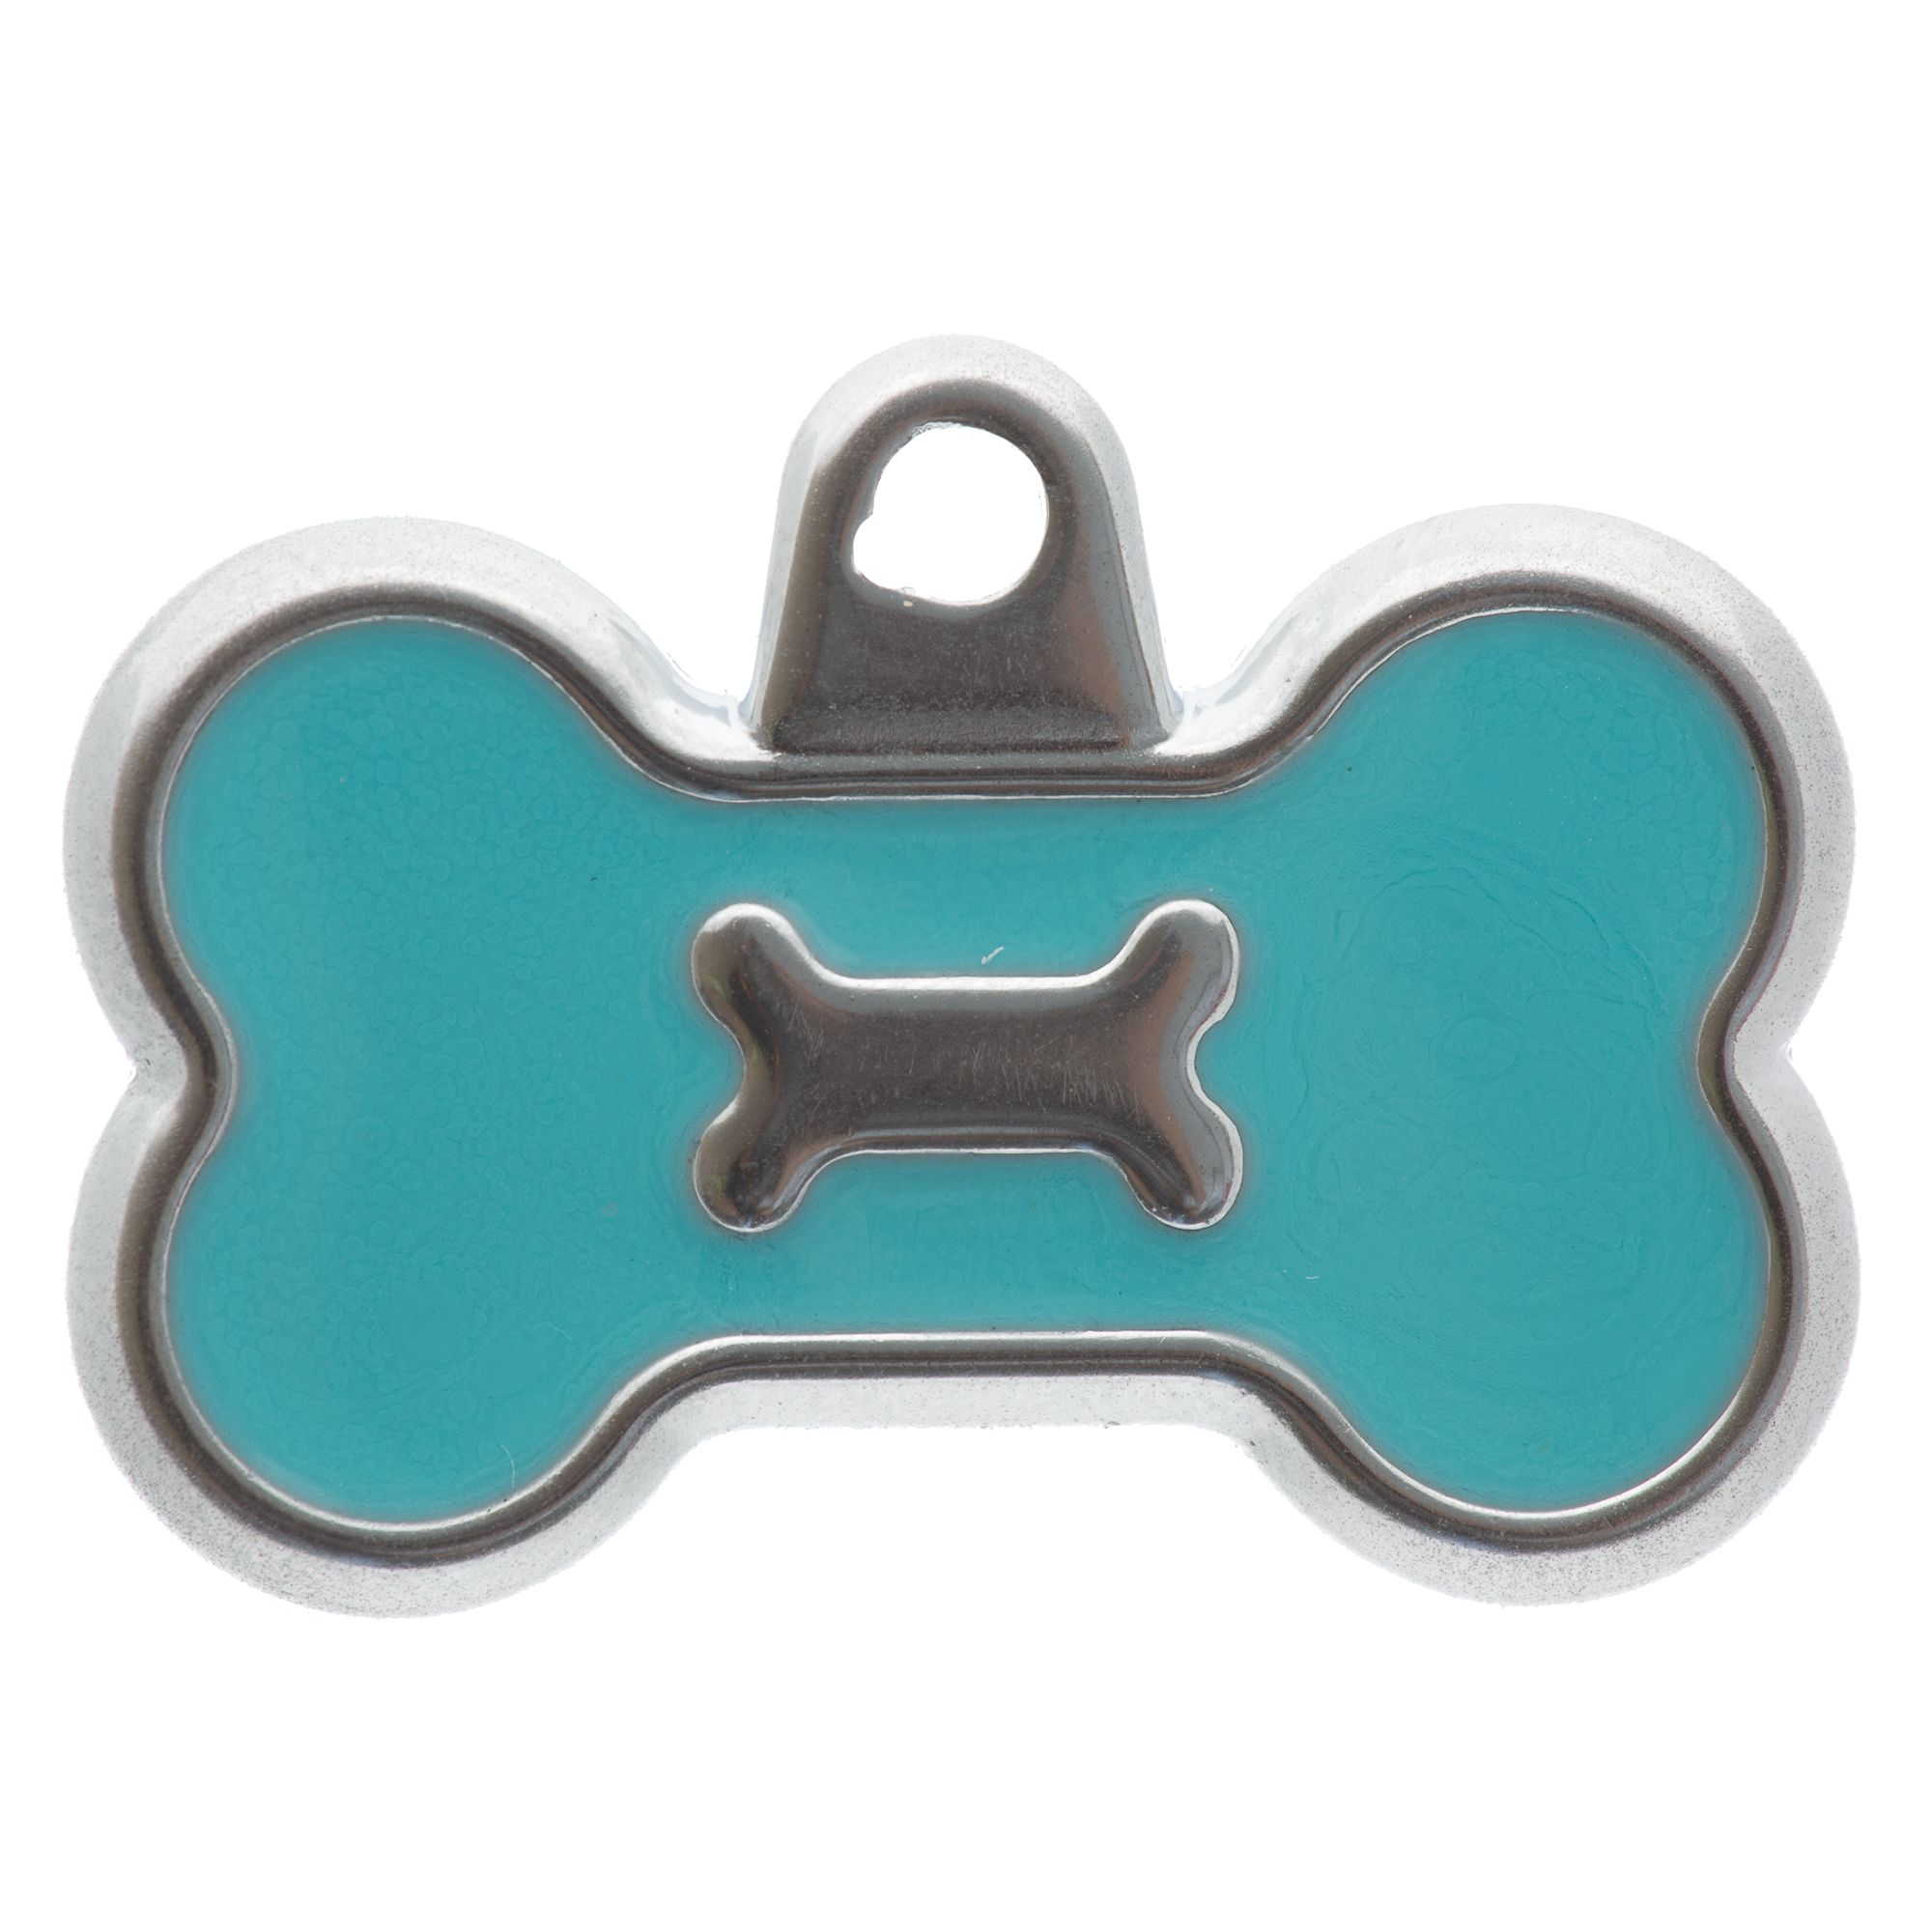 Tagworks Bone Personalized Pet Id Tag